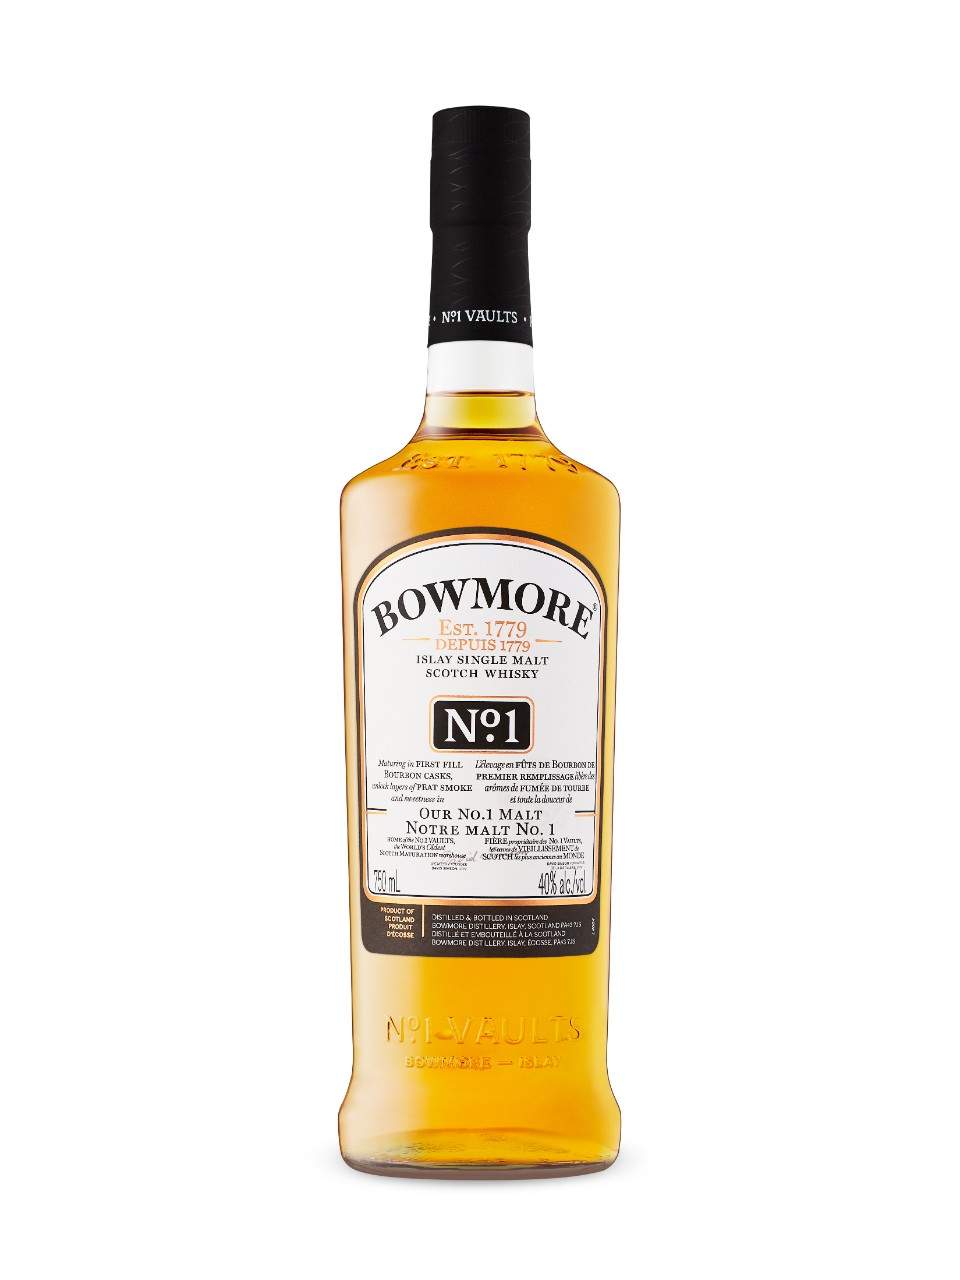 Image for Bowmore No. 1 Islay Single Malt Scotch Whisky from LCBO